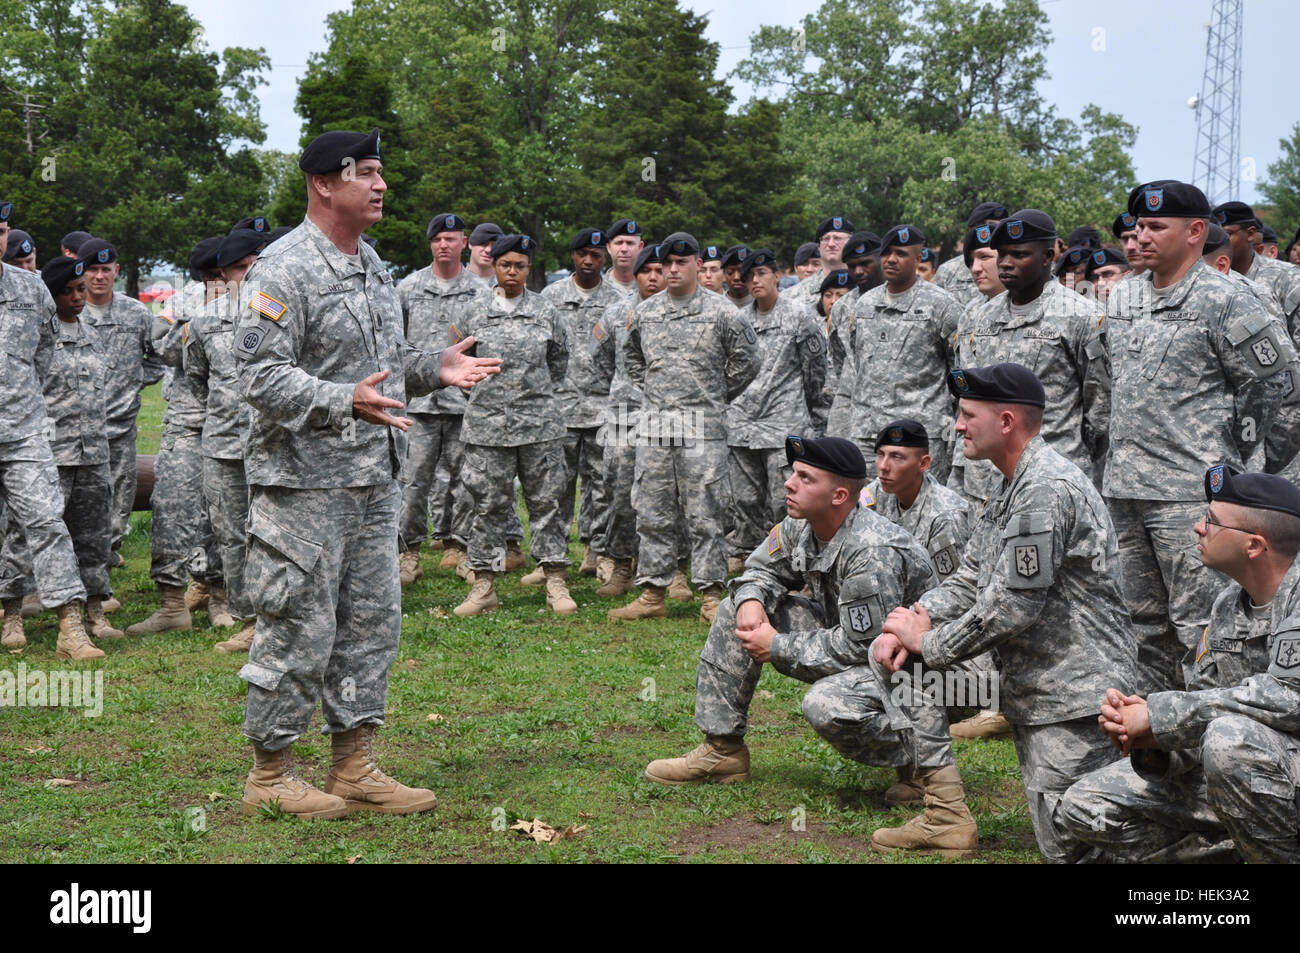 Dennis Carey, who serves as the senior enlisted leader of U.S. Forces  Command, speaks with 193rd Brigade Support Battalion Soldiers, 4th Maneuver  ...